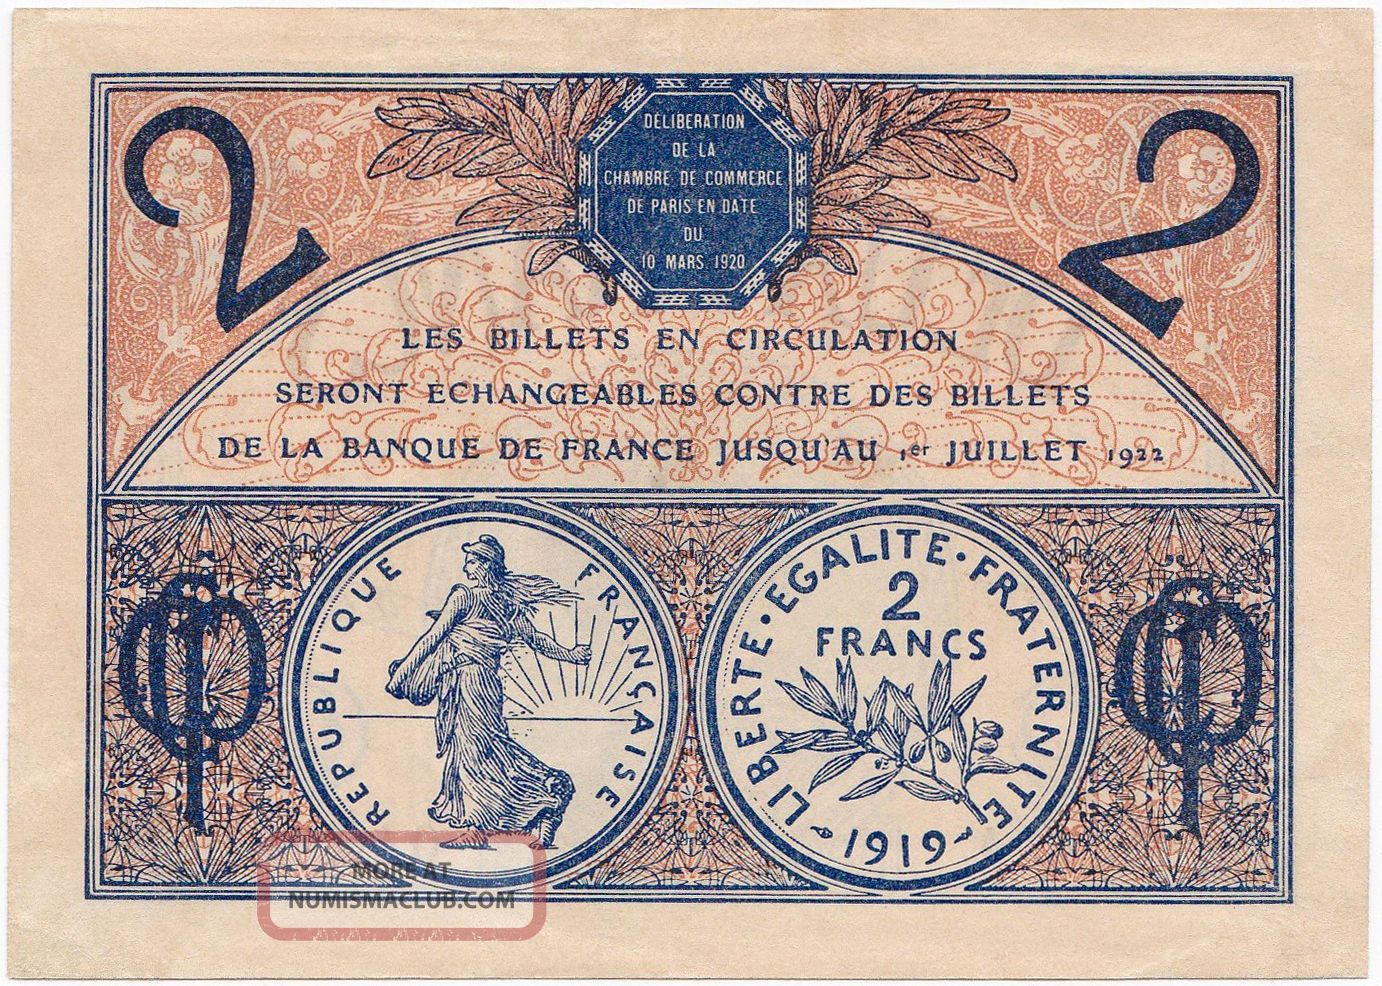 France 2 francs 1919 1922 xf chambre de commerce de paris for Chambre de commerce france canada